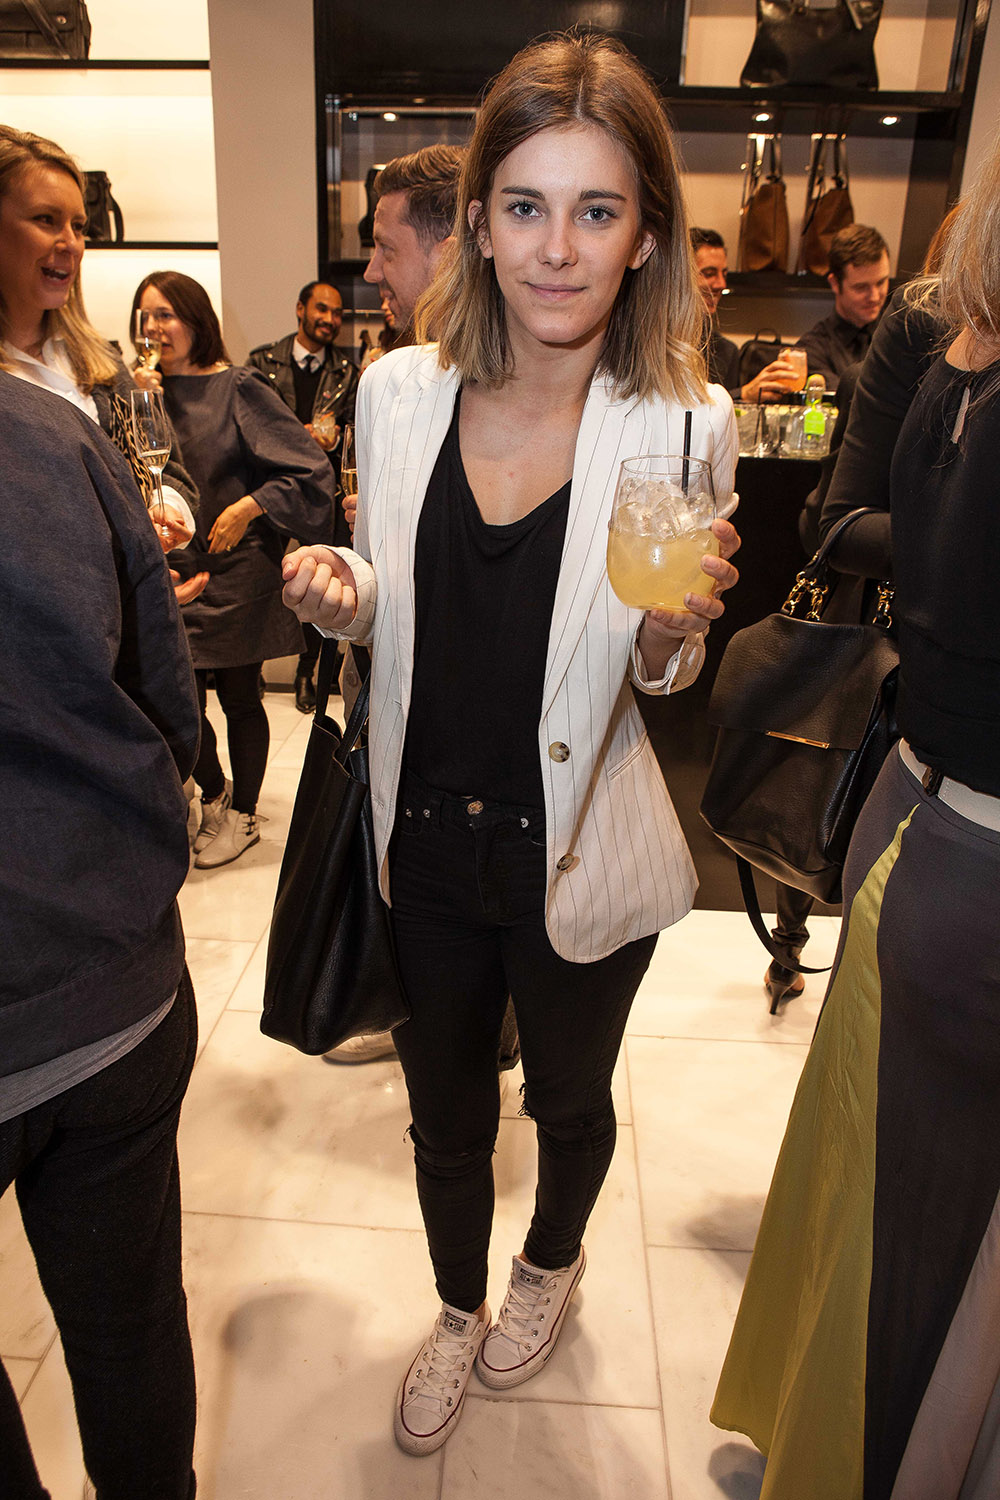 patron@coach - melbourne 15-10-14 (156 of 190).jpg